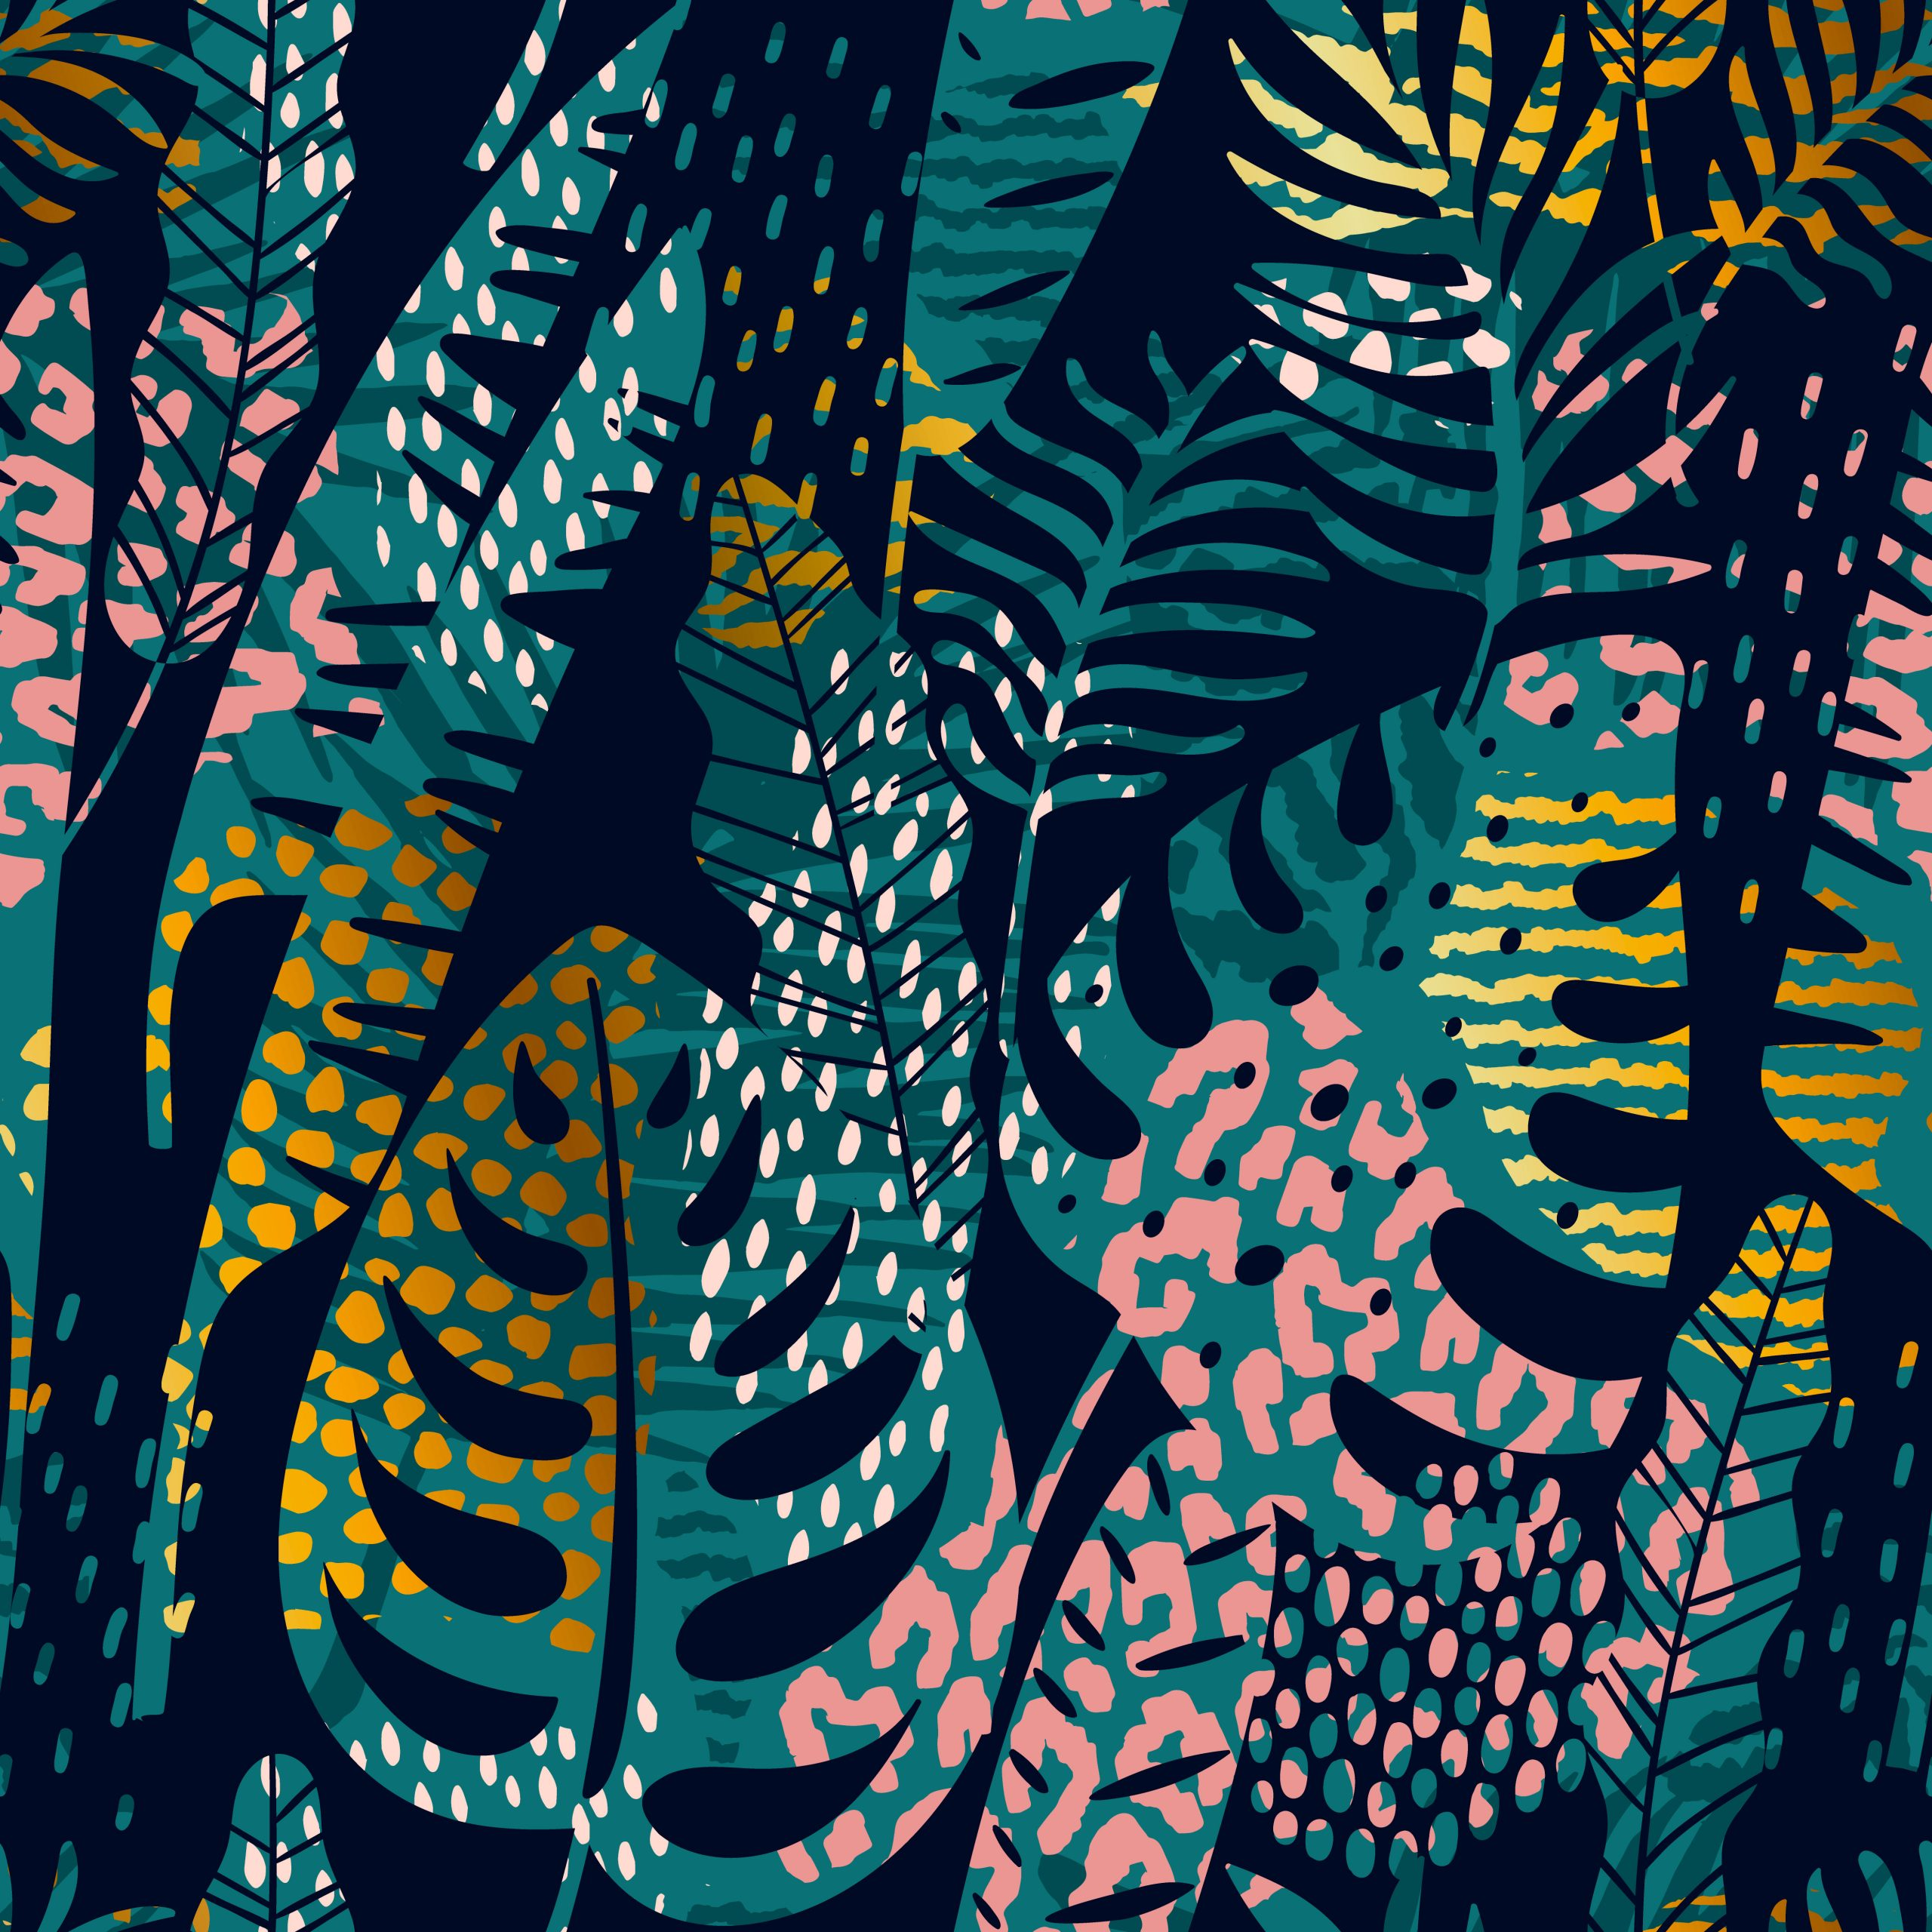 Trendy seamless exotic pattern with tropical plants, animal prints and hand drawn textures. Vector illustration. Modern abstract design for paper, wallpaper, cover, fabric, Interior decor.